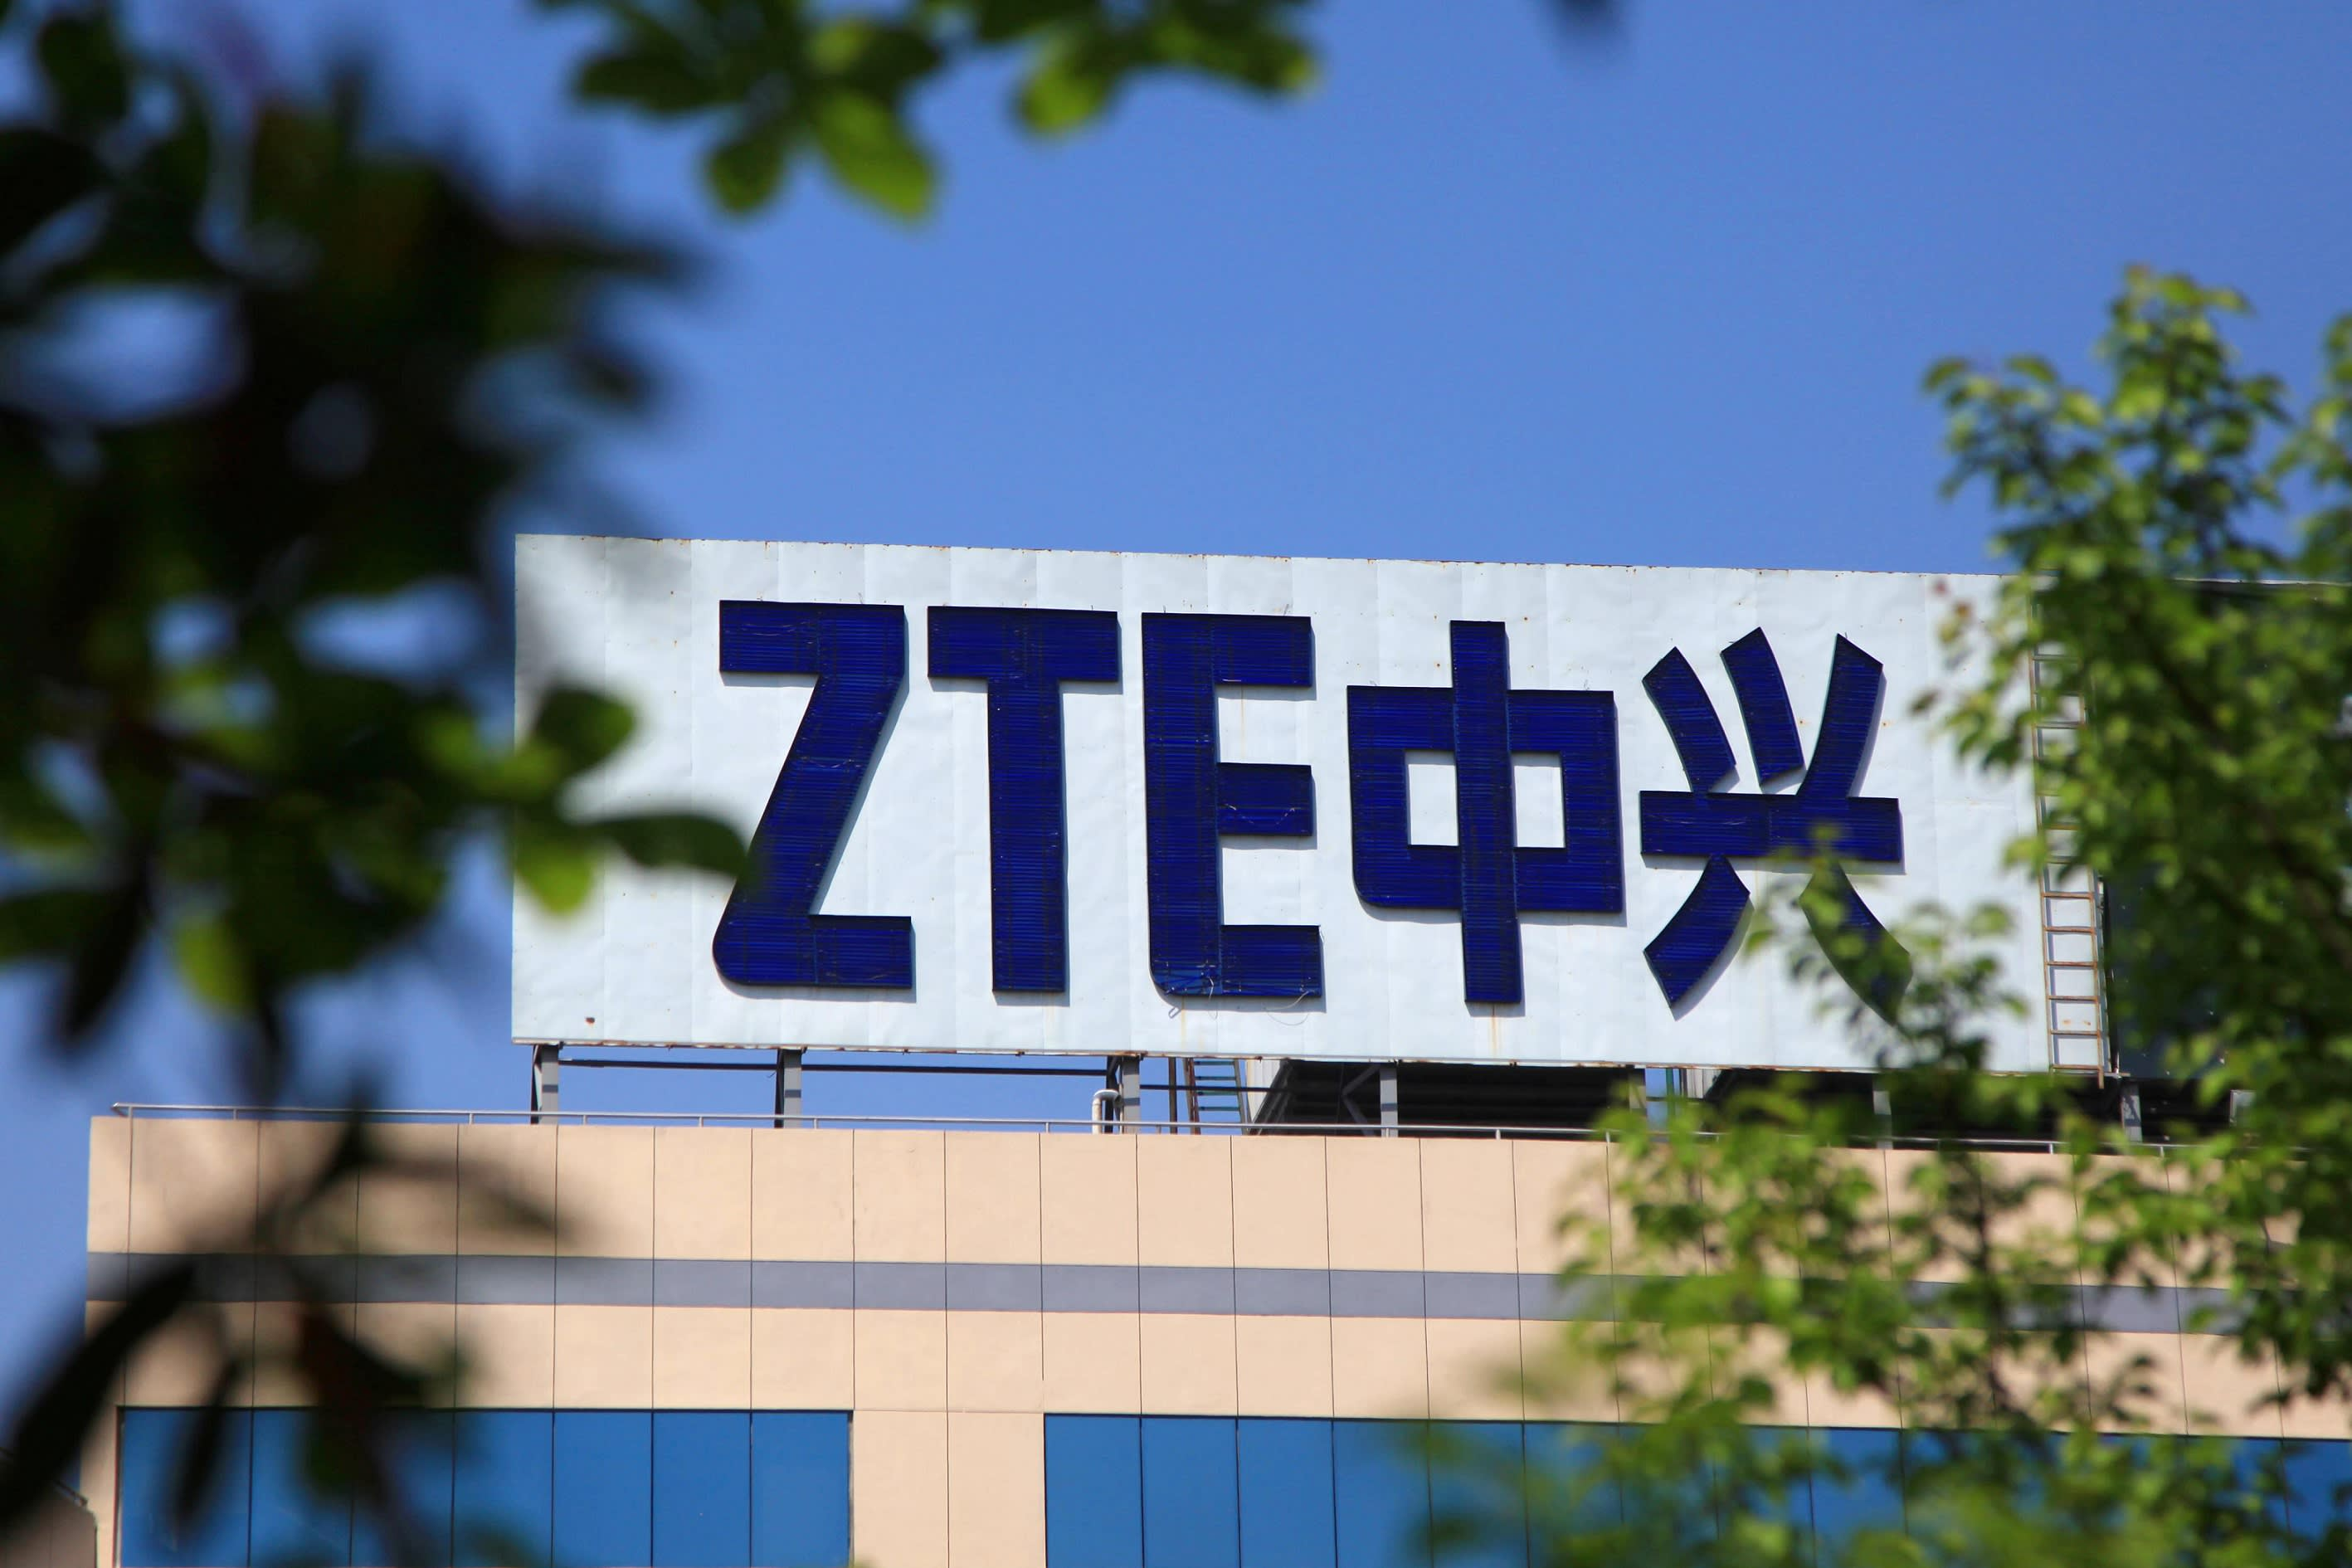 COMMENTARY: Trump's Lifeline to ZTE Represents Transactional Dealmaking at Its Worst